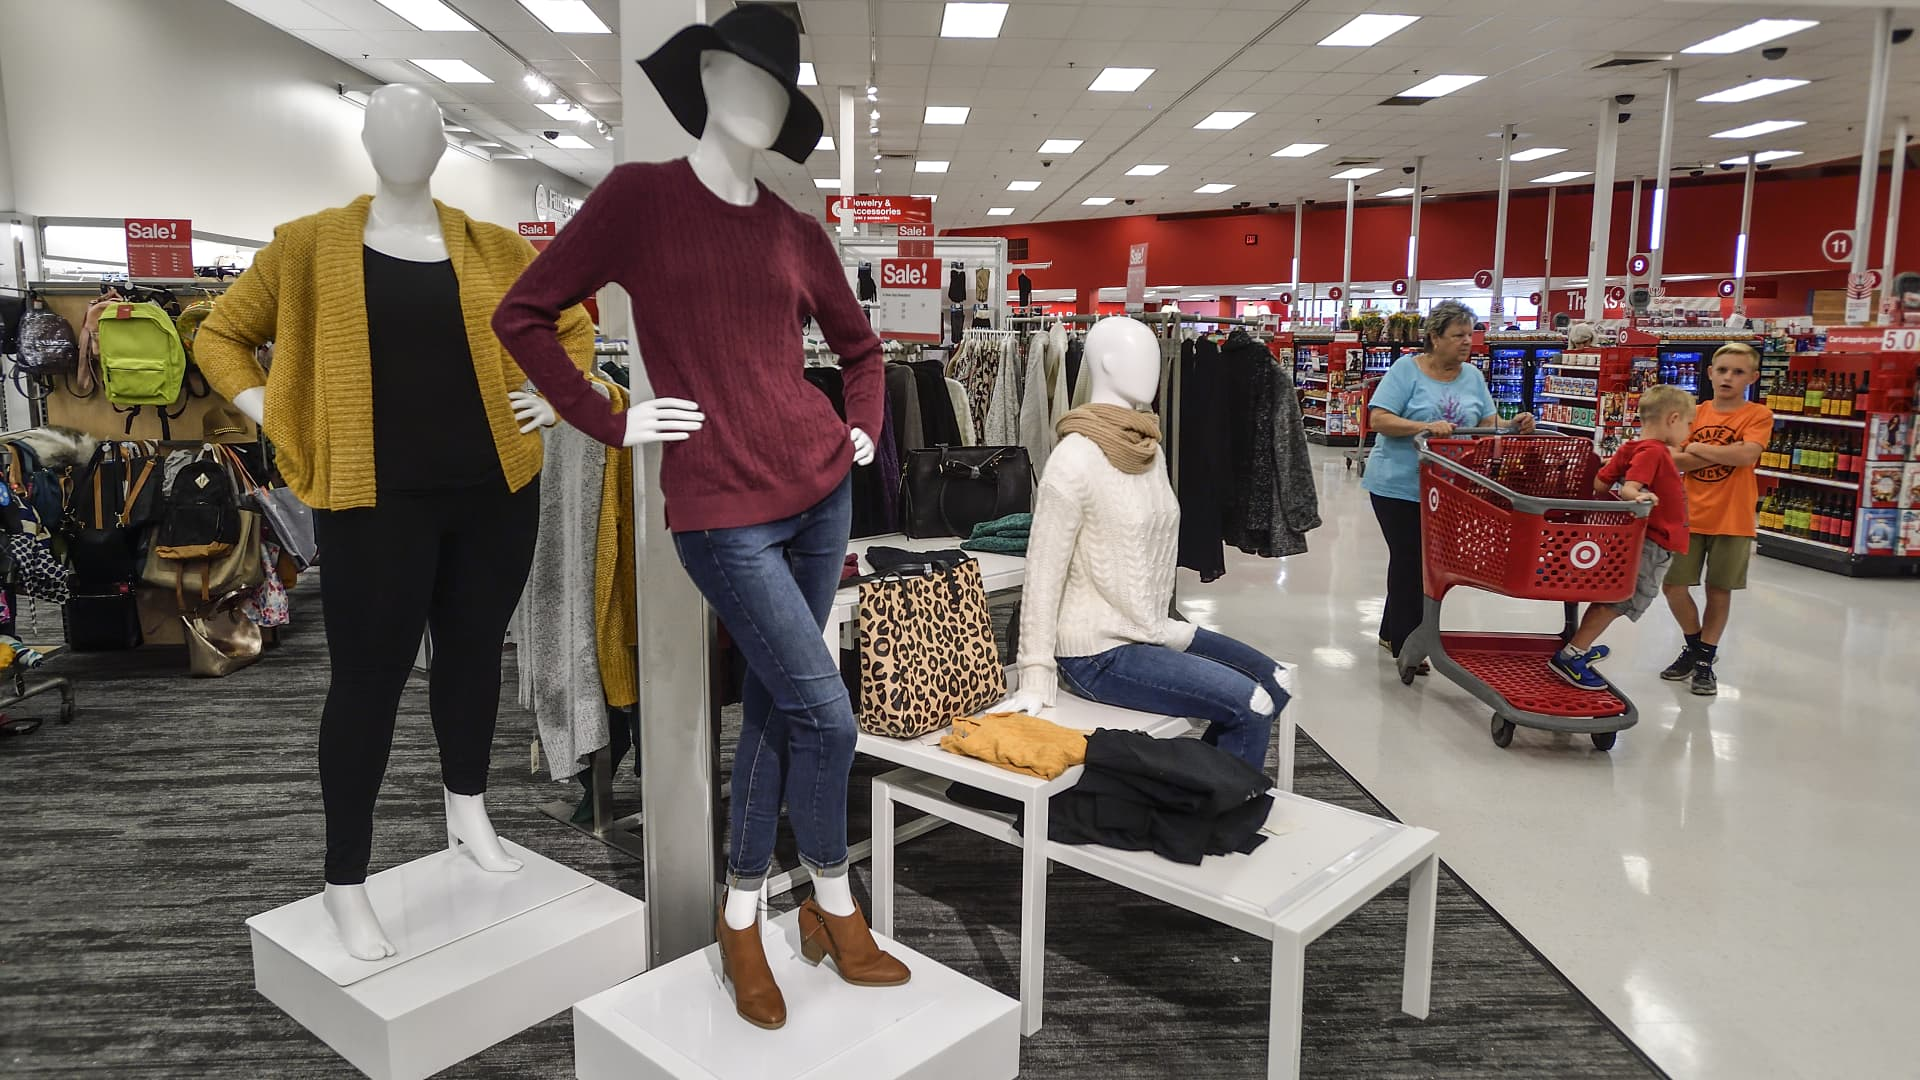 An increased number of mannequins feature clothing and shoes throughout the remodeled Target store in Orange, California.